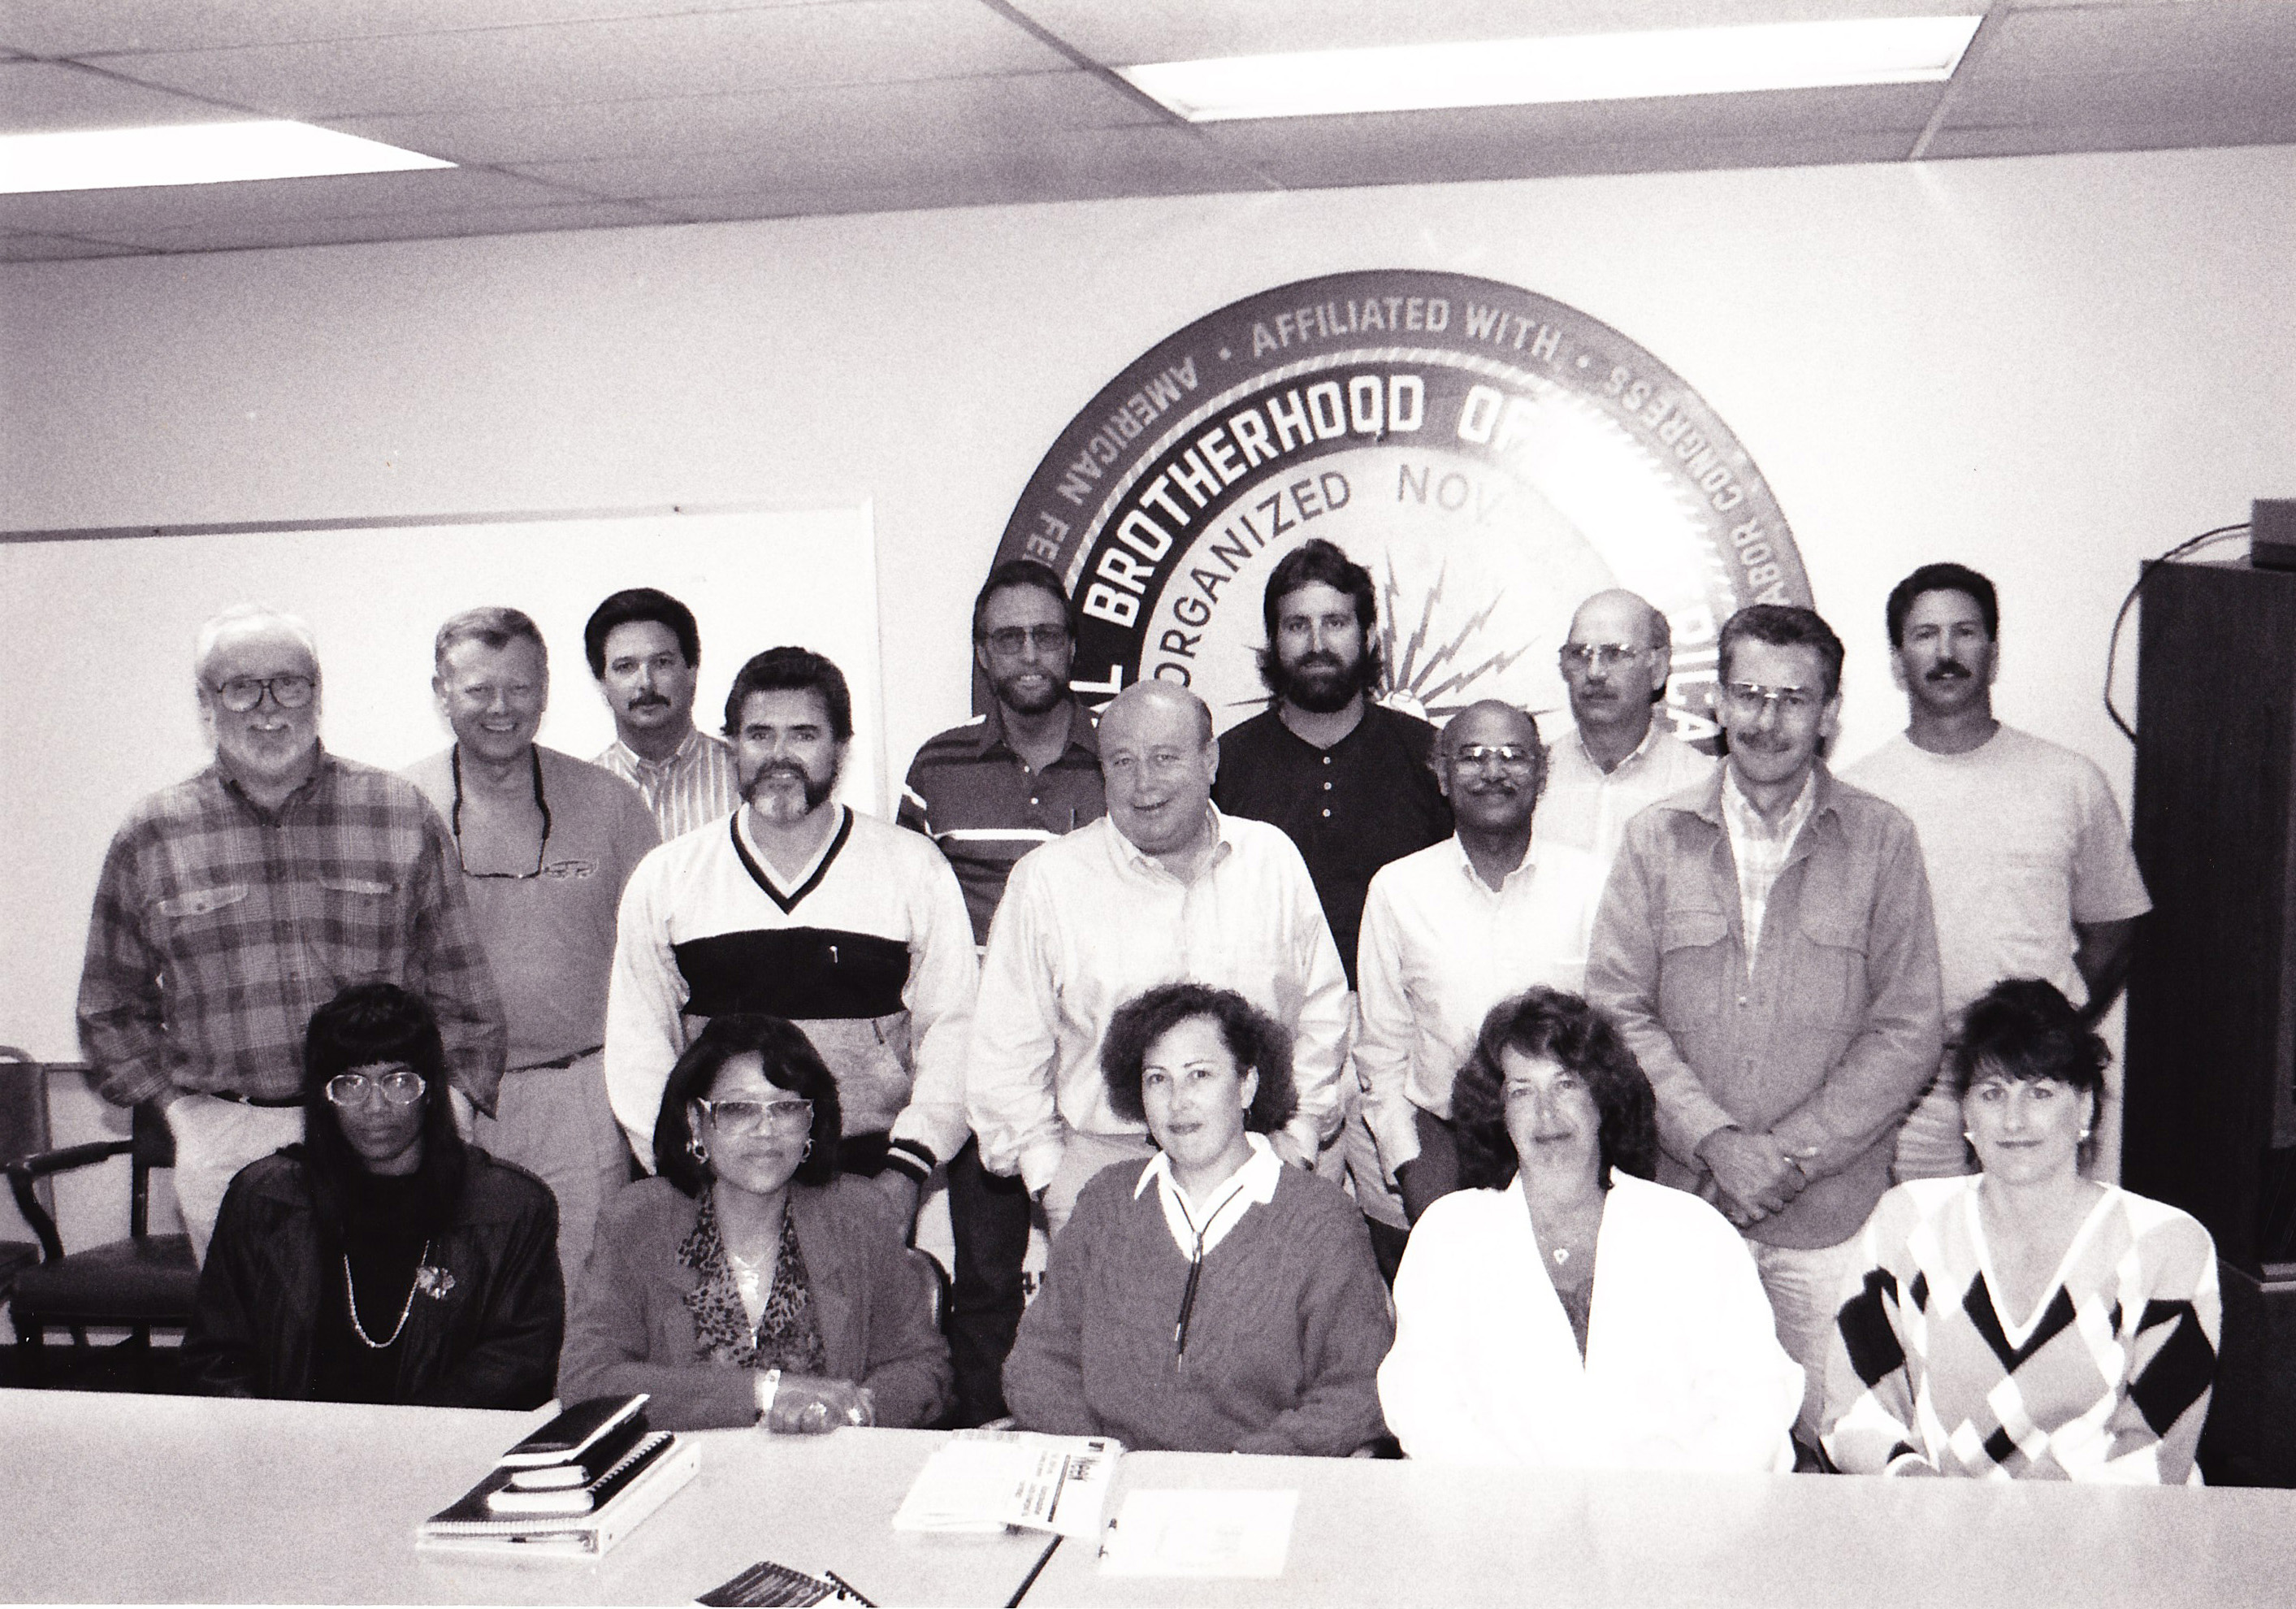 Debbie is right in the middle of the front row for this group shot of the PG&E Bargaining Committee in the early 1990s.